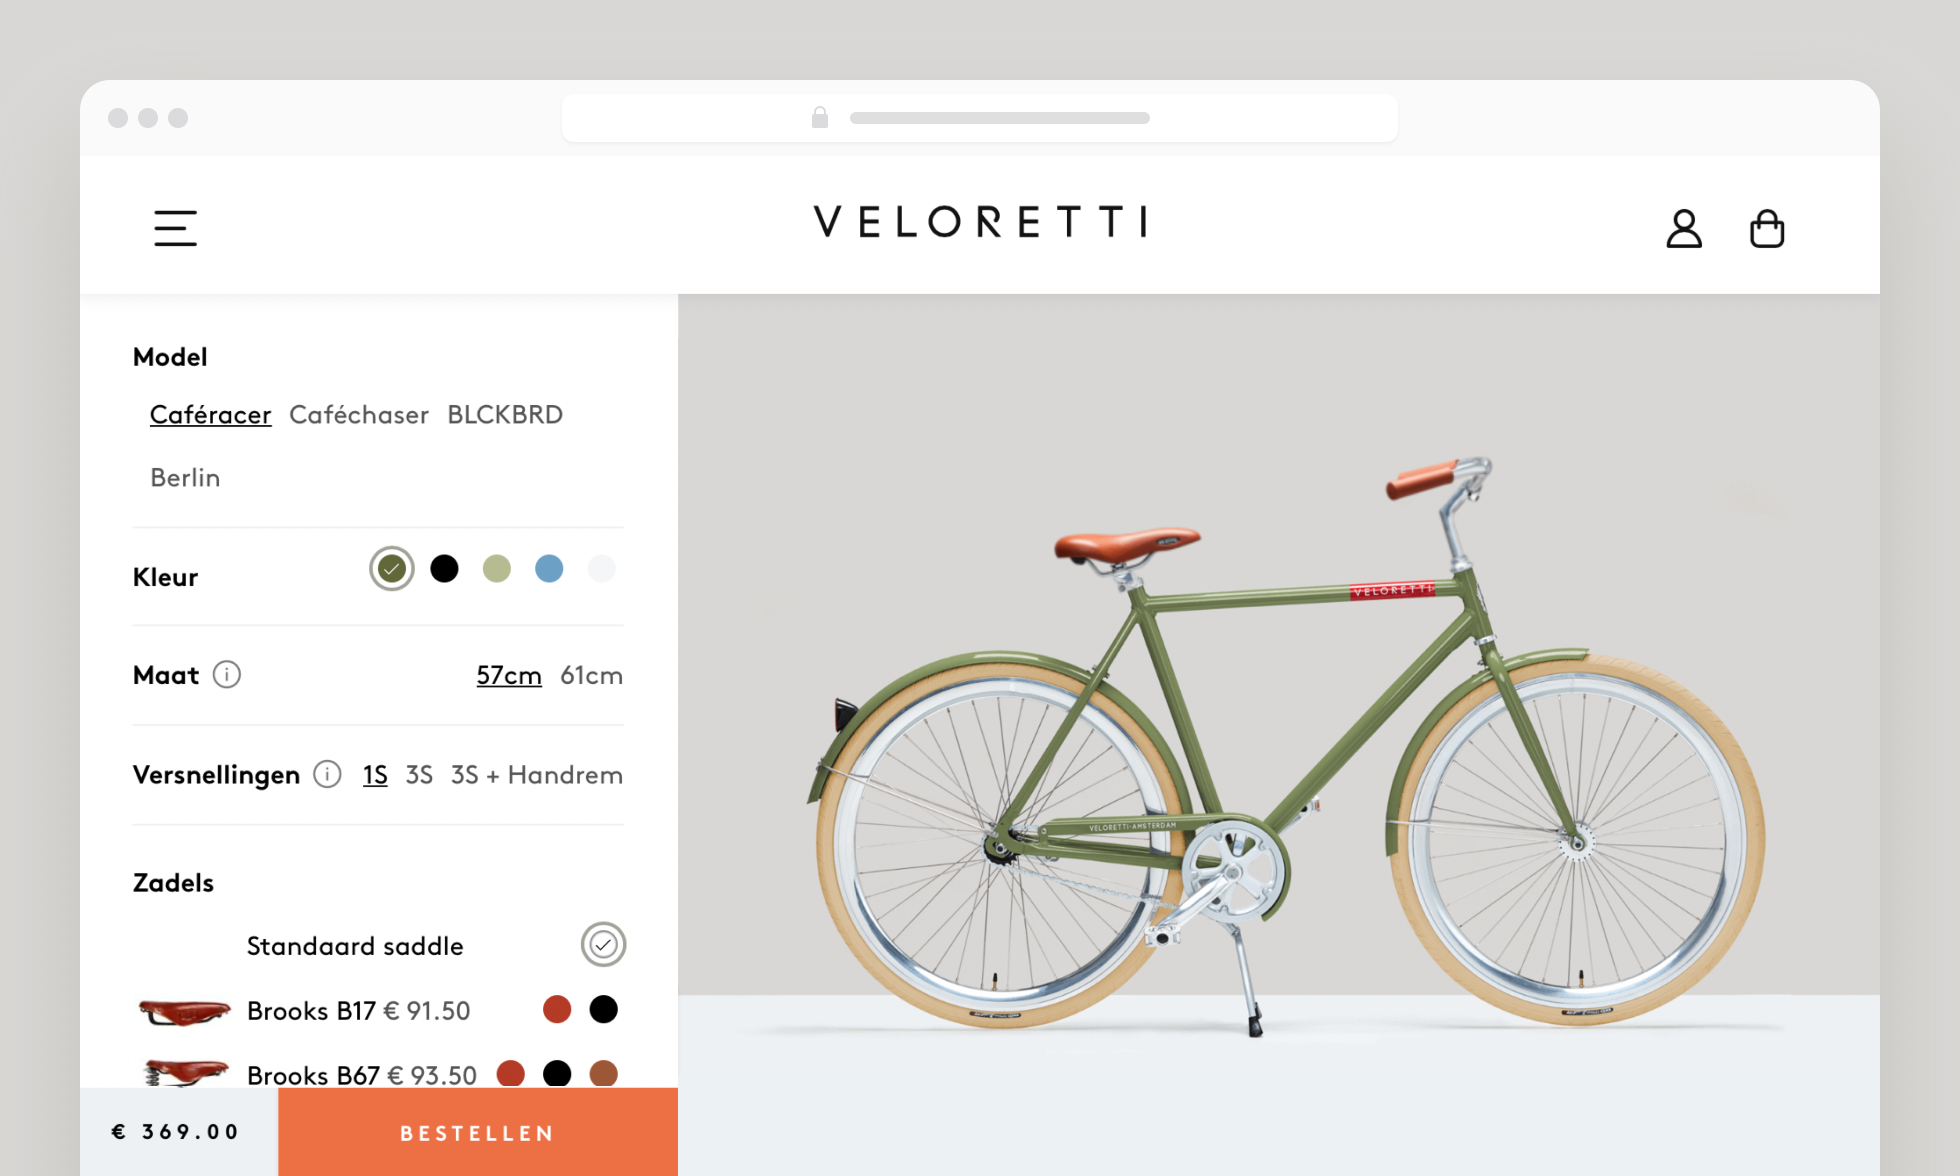 Example of a page where you can buy Veloretti's bicycle online